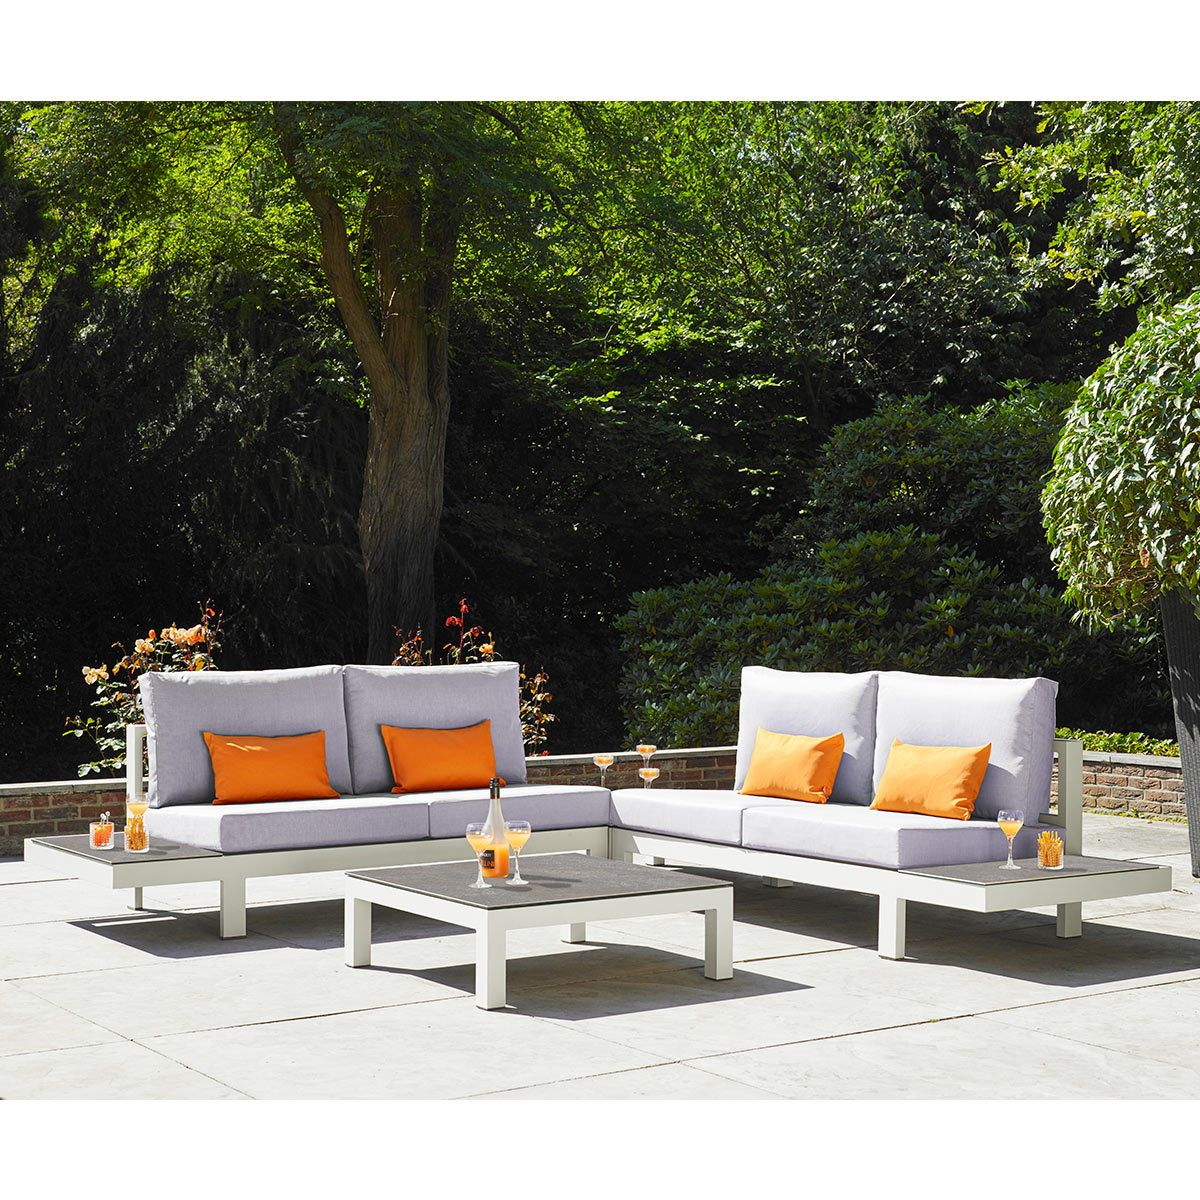 LIFE Outdoor Living Lava 3 Piece Lounge Set Outdoor